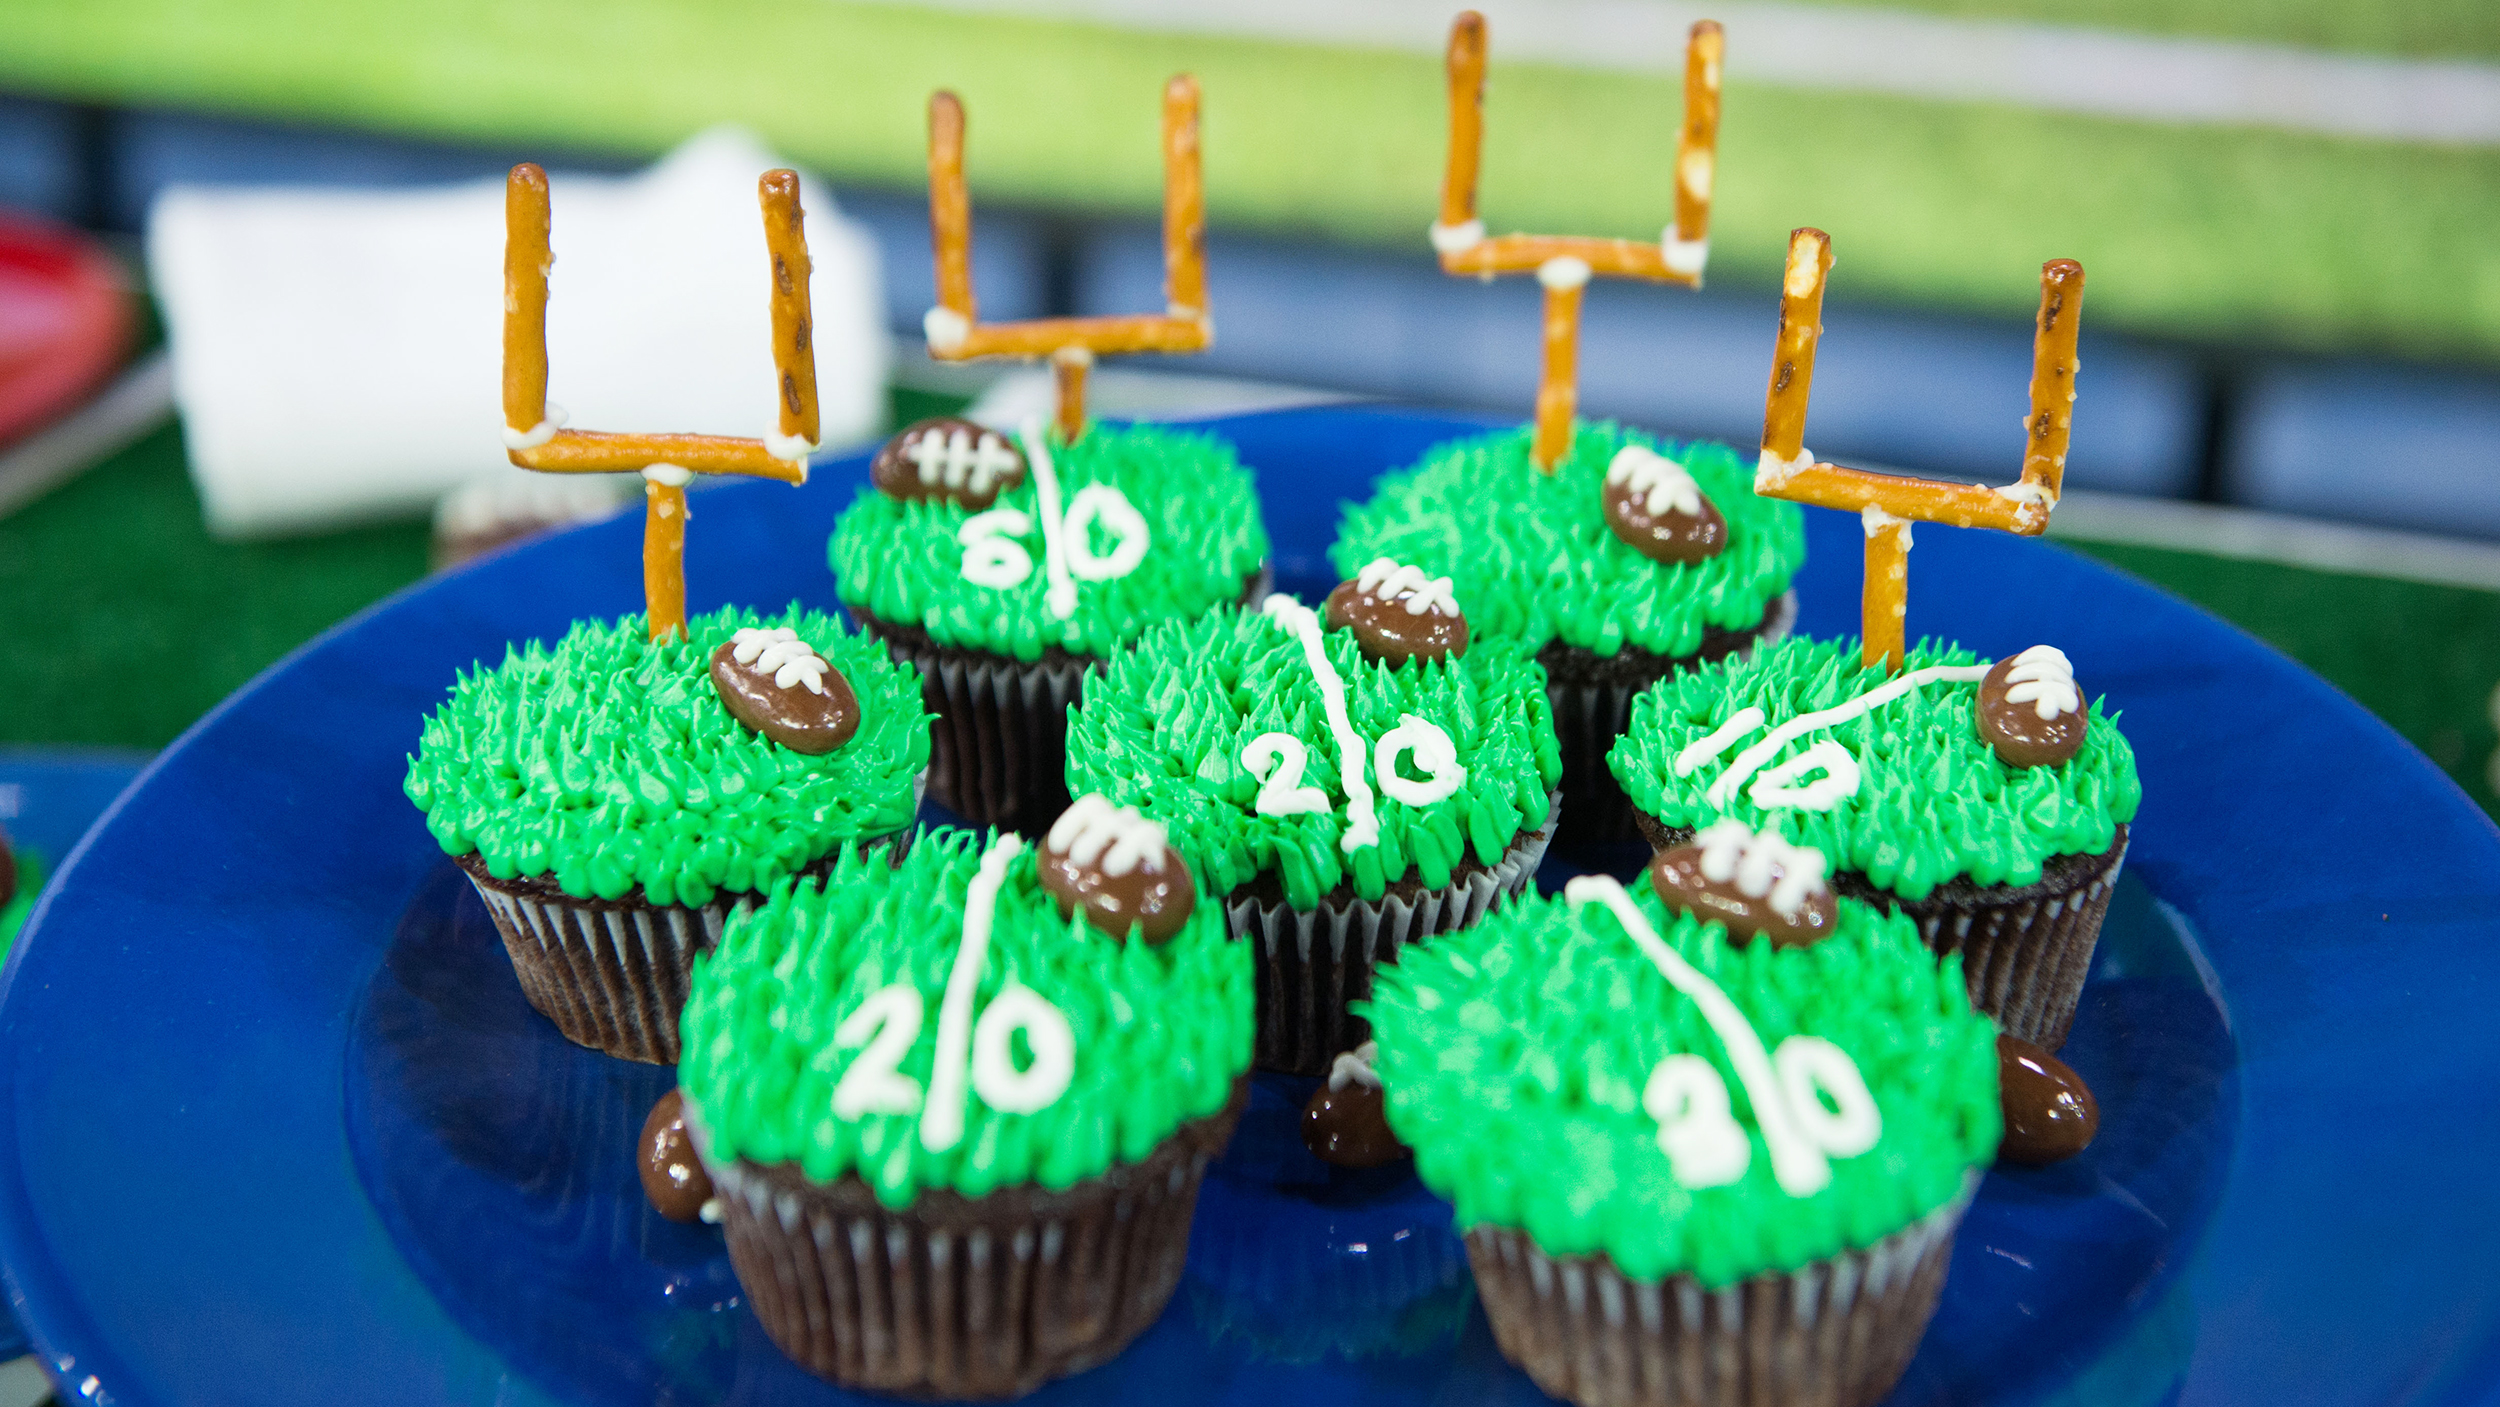 How To Make A Football Cake From Cupcakes